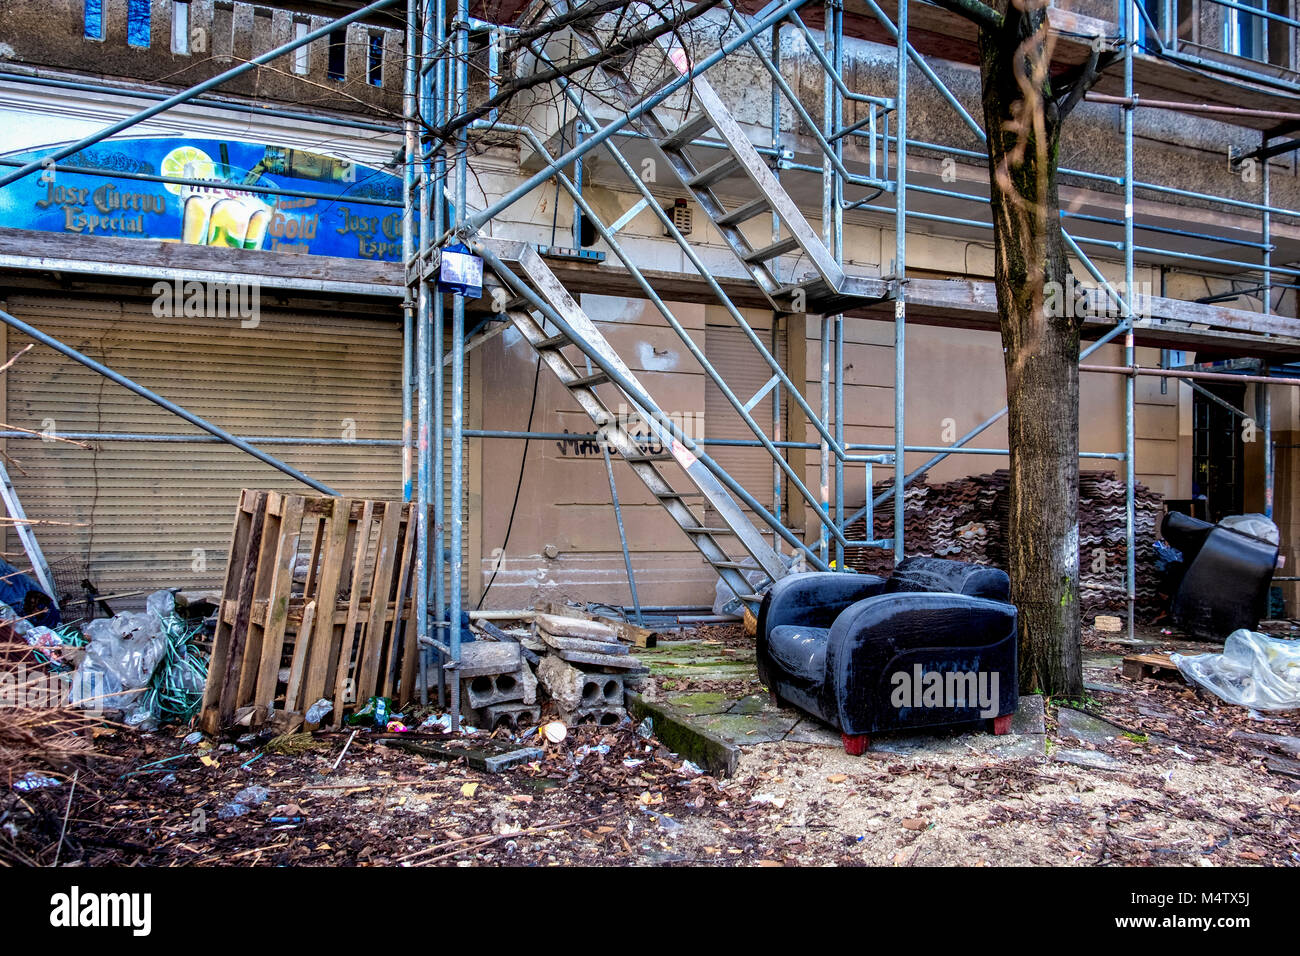 Berlin Prenzlauerberg,Street view .Contruction site with building materials,scaffolding and discardedd old sofa - Stock Image